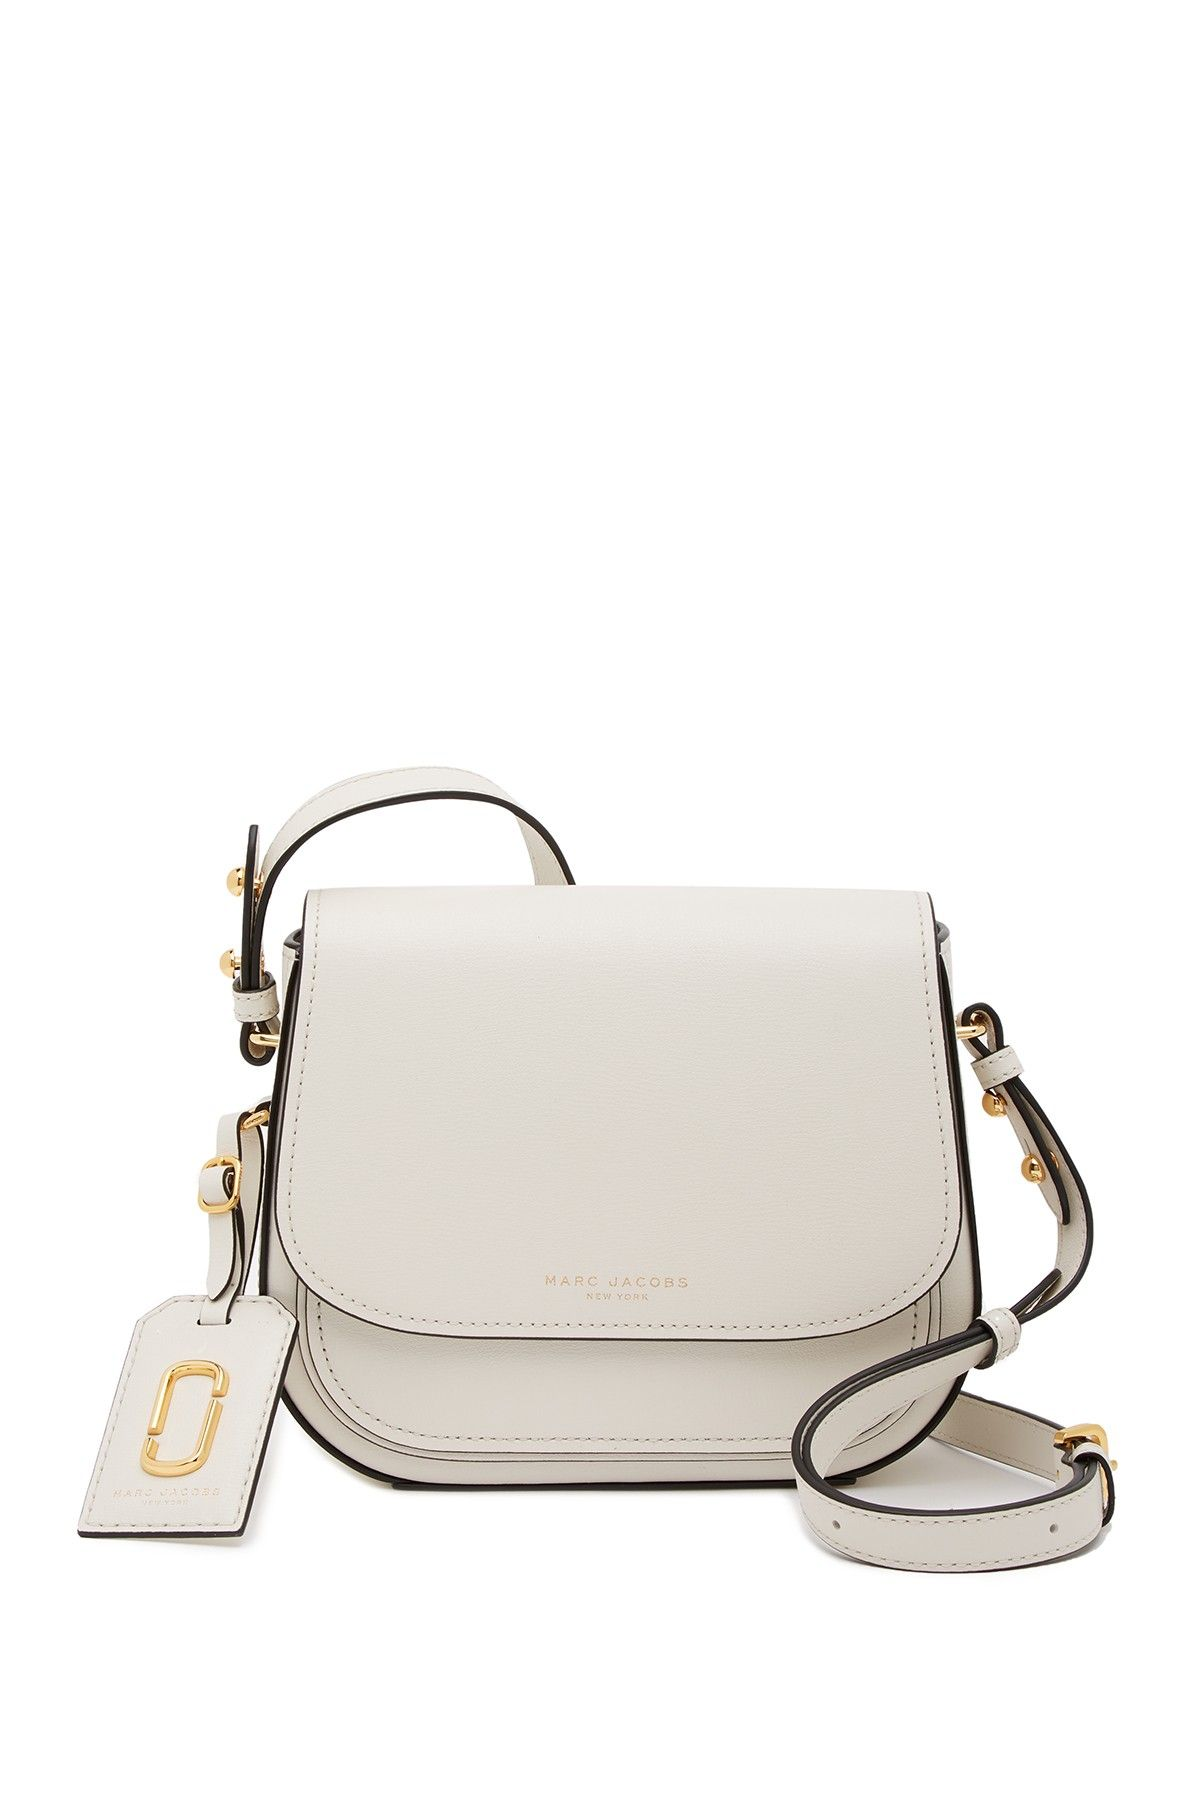 9adf73a359b4 Mini Rider Leather Crossbody Bag by Marc Jacobs on  nordstrom rack